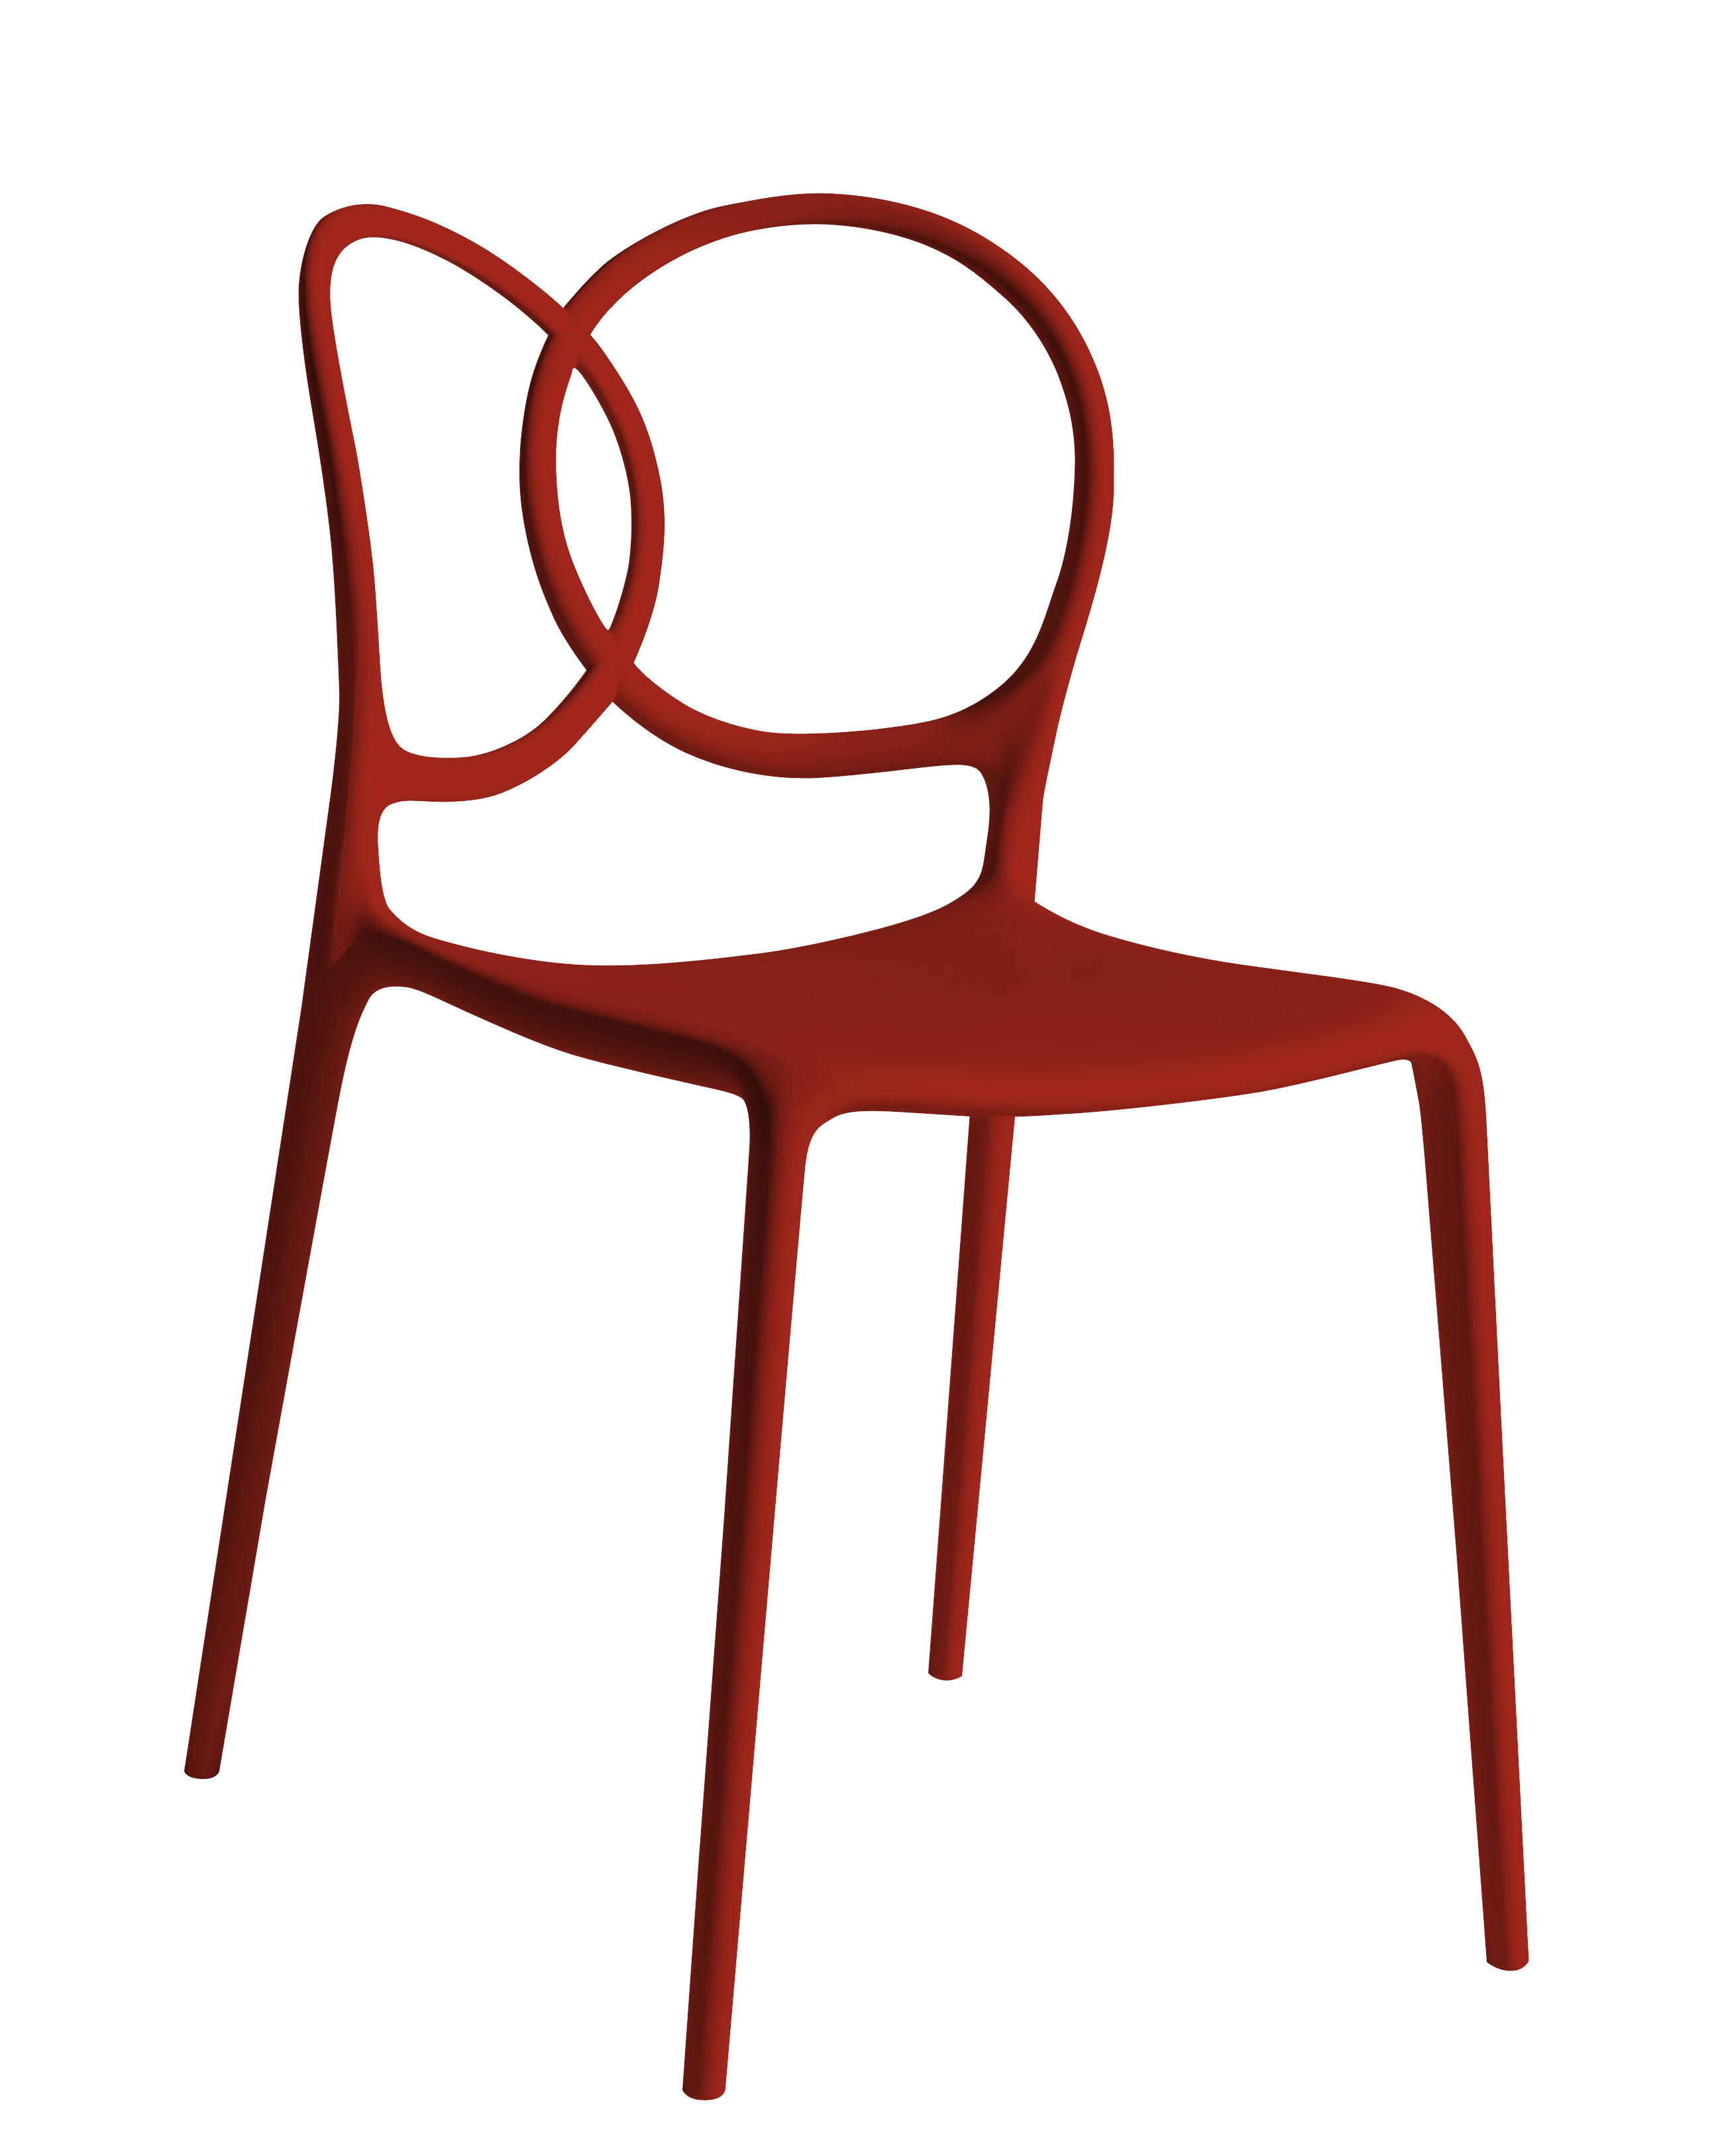 Furniture - Chairs - Sissi Stacking chair - Outdoor by Driade - Red - Fibreglass, Polypropylene, Polythene